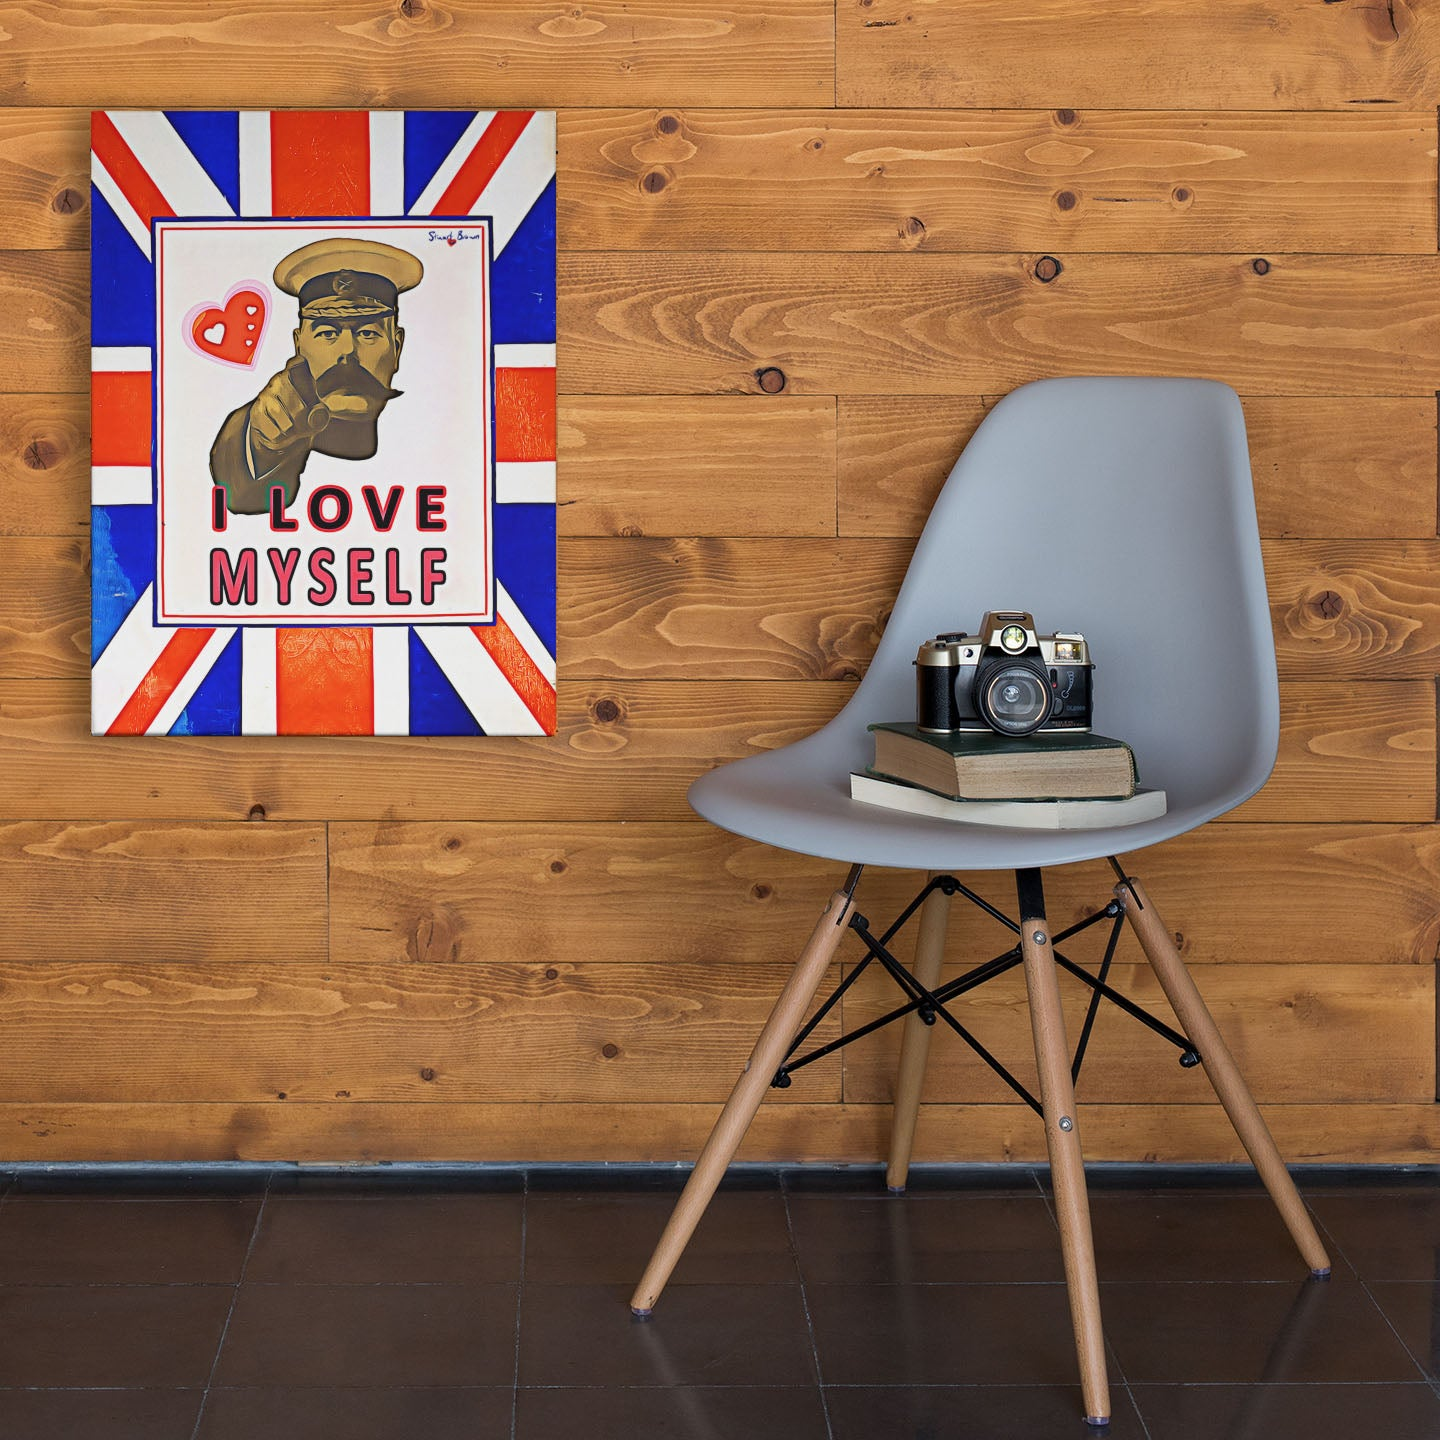 general lord kitchener art